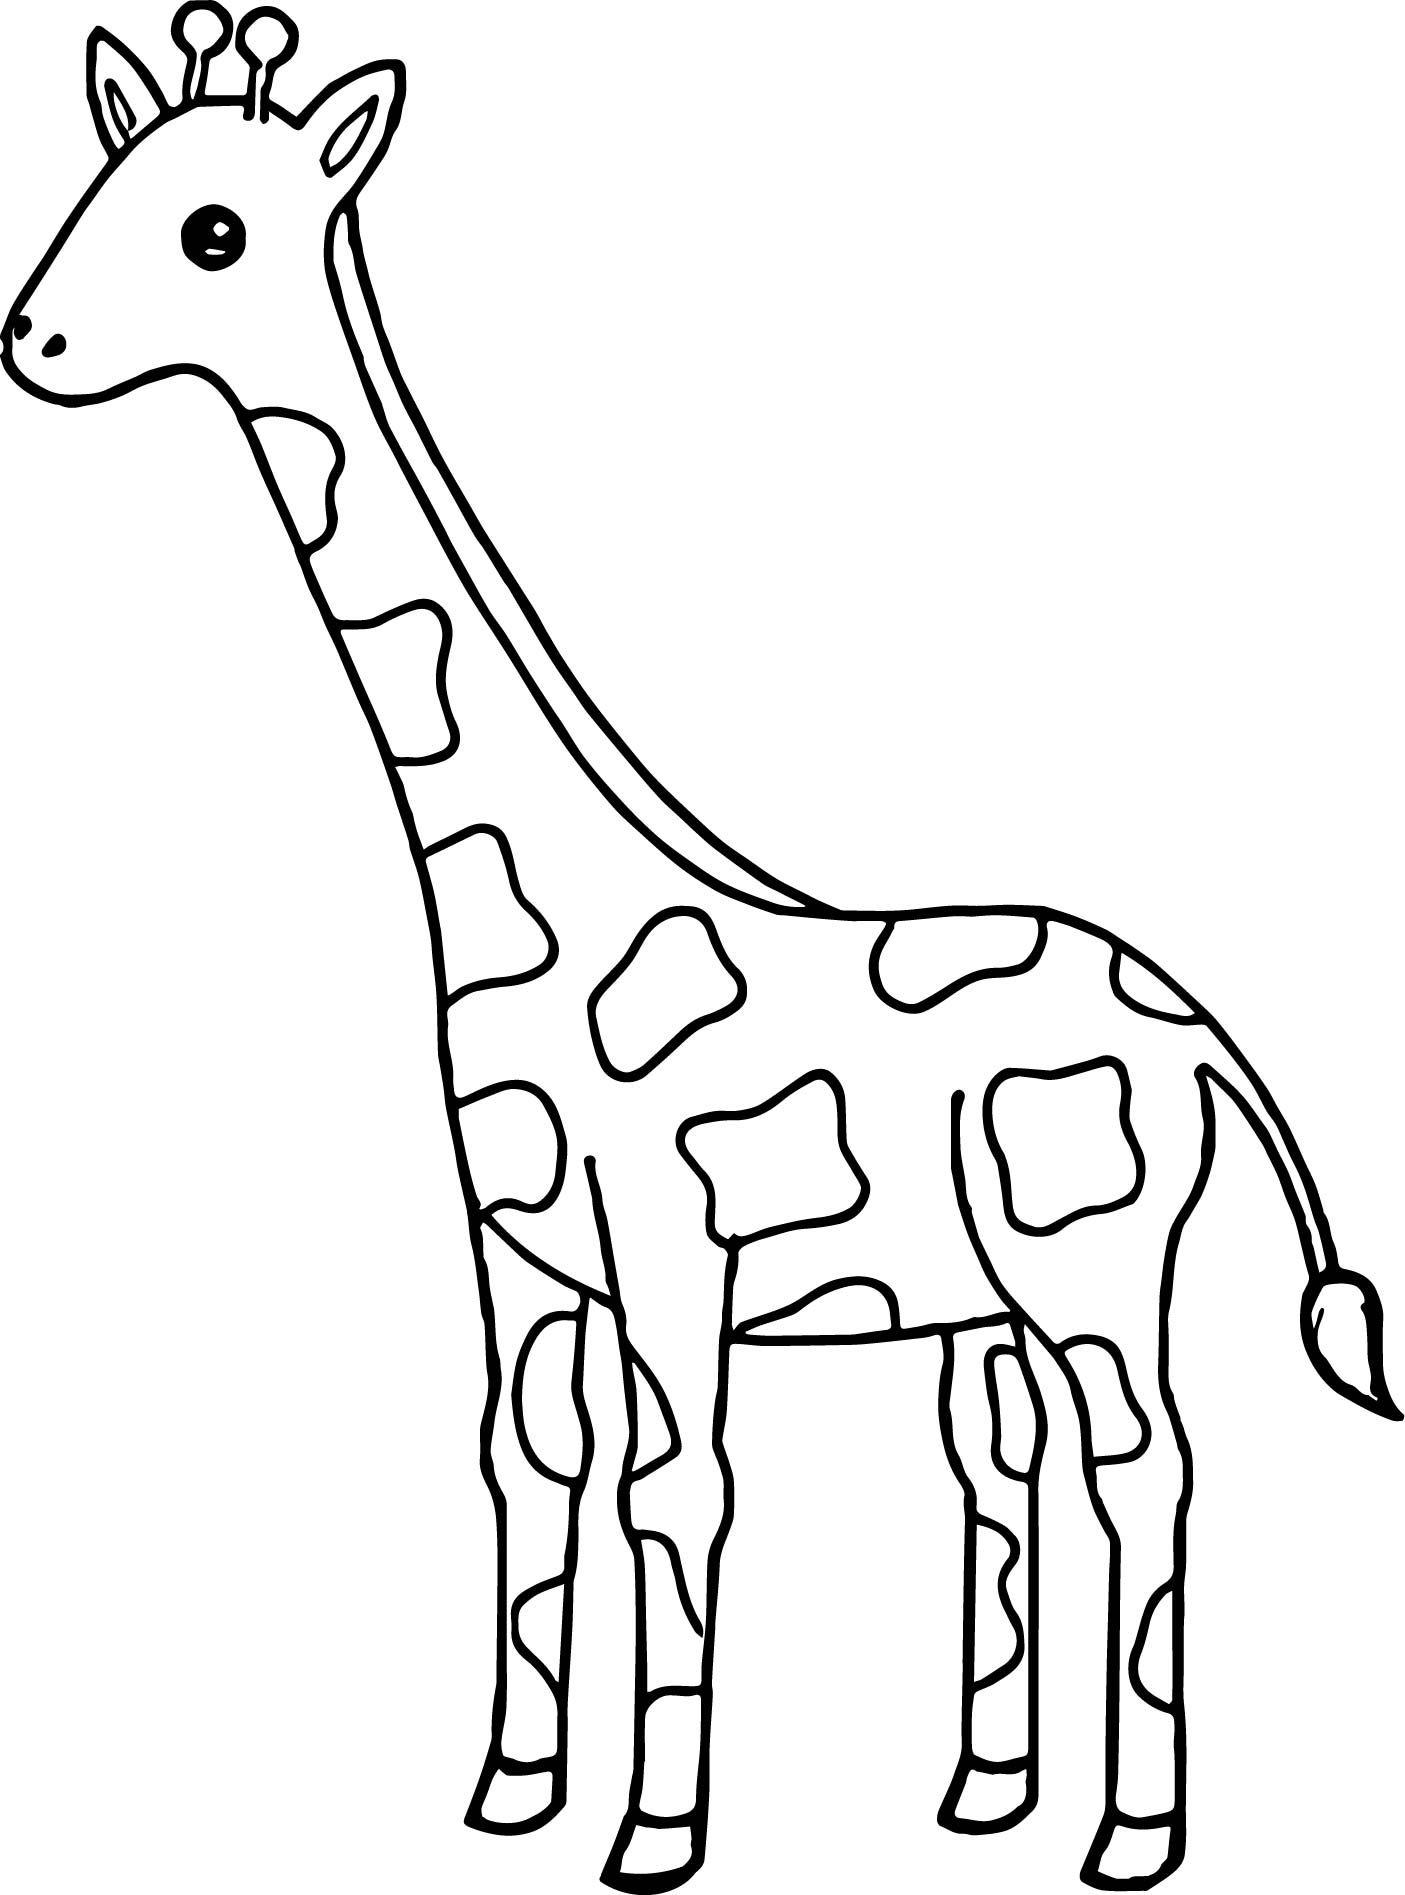 giraffes coloring pages soulmetalpodcast giraffe for coloring giraffes pages coloring